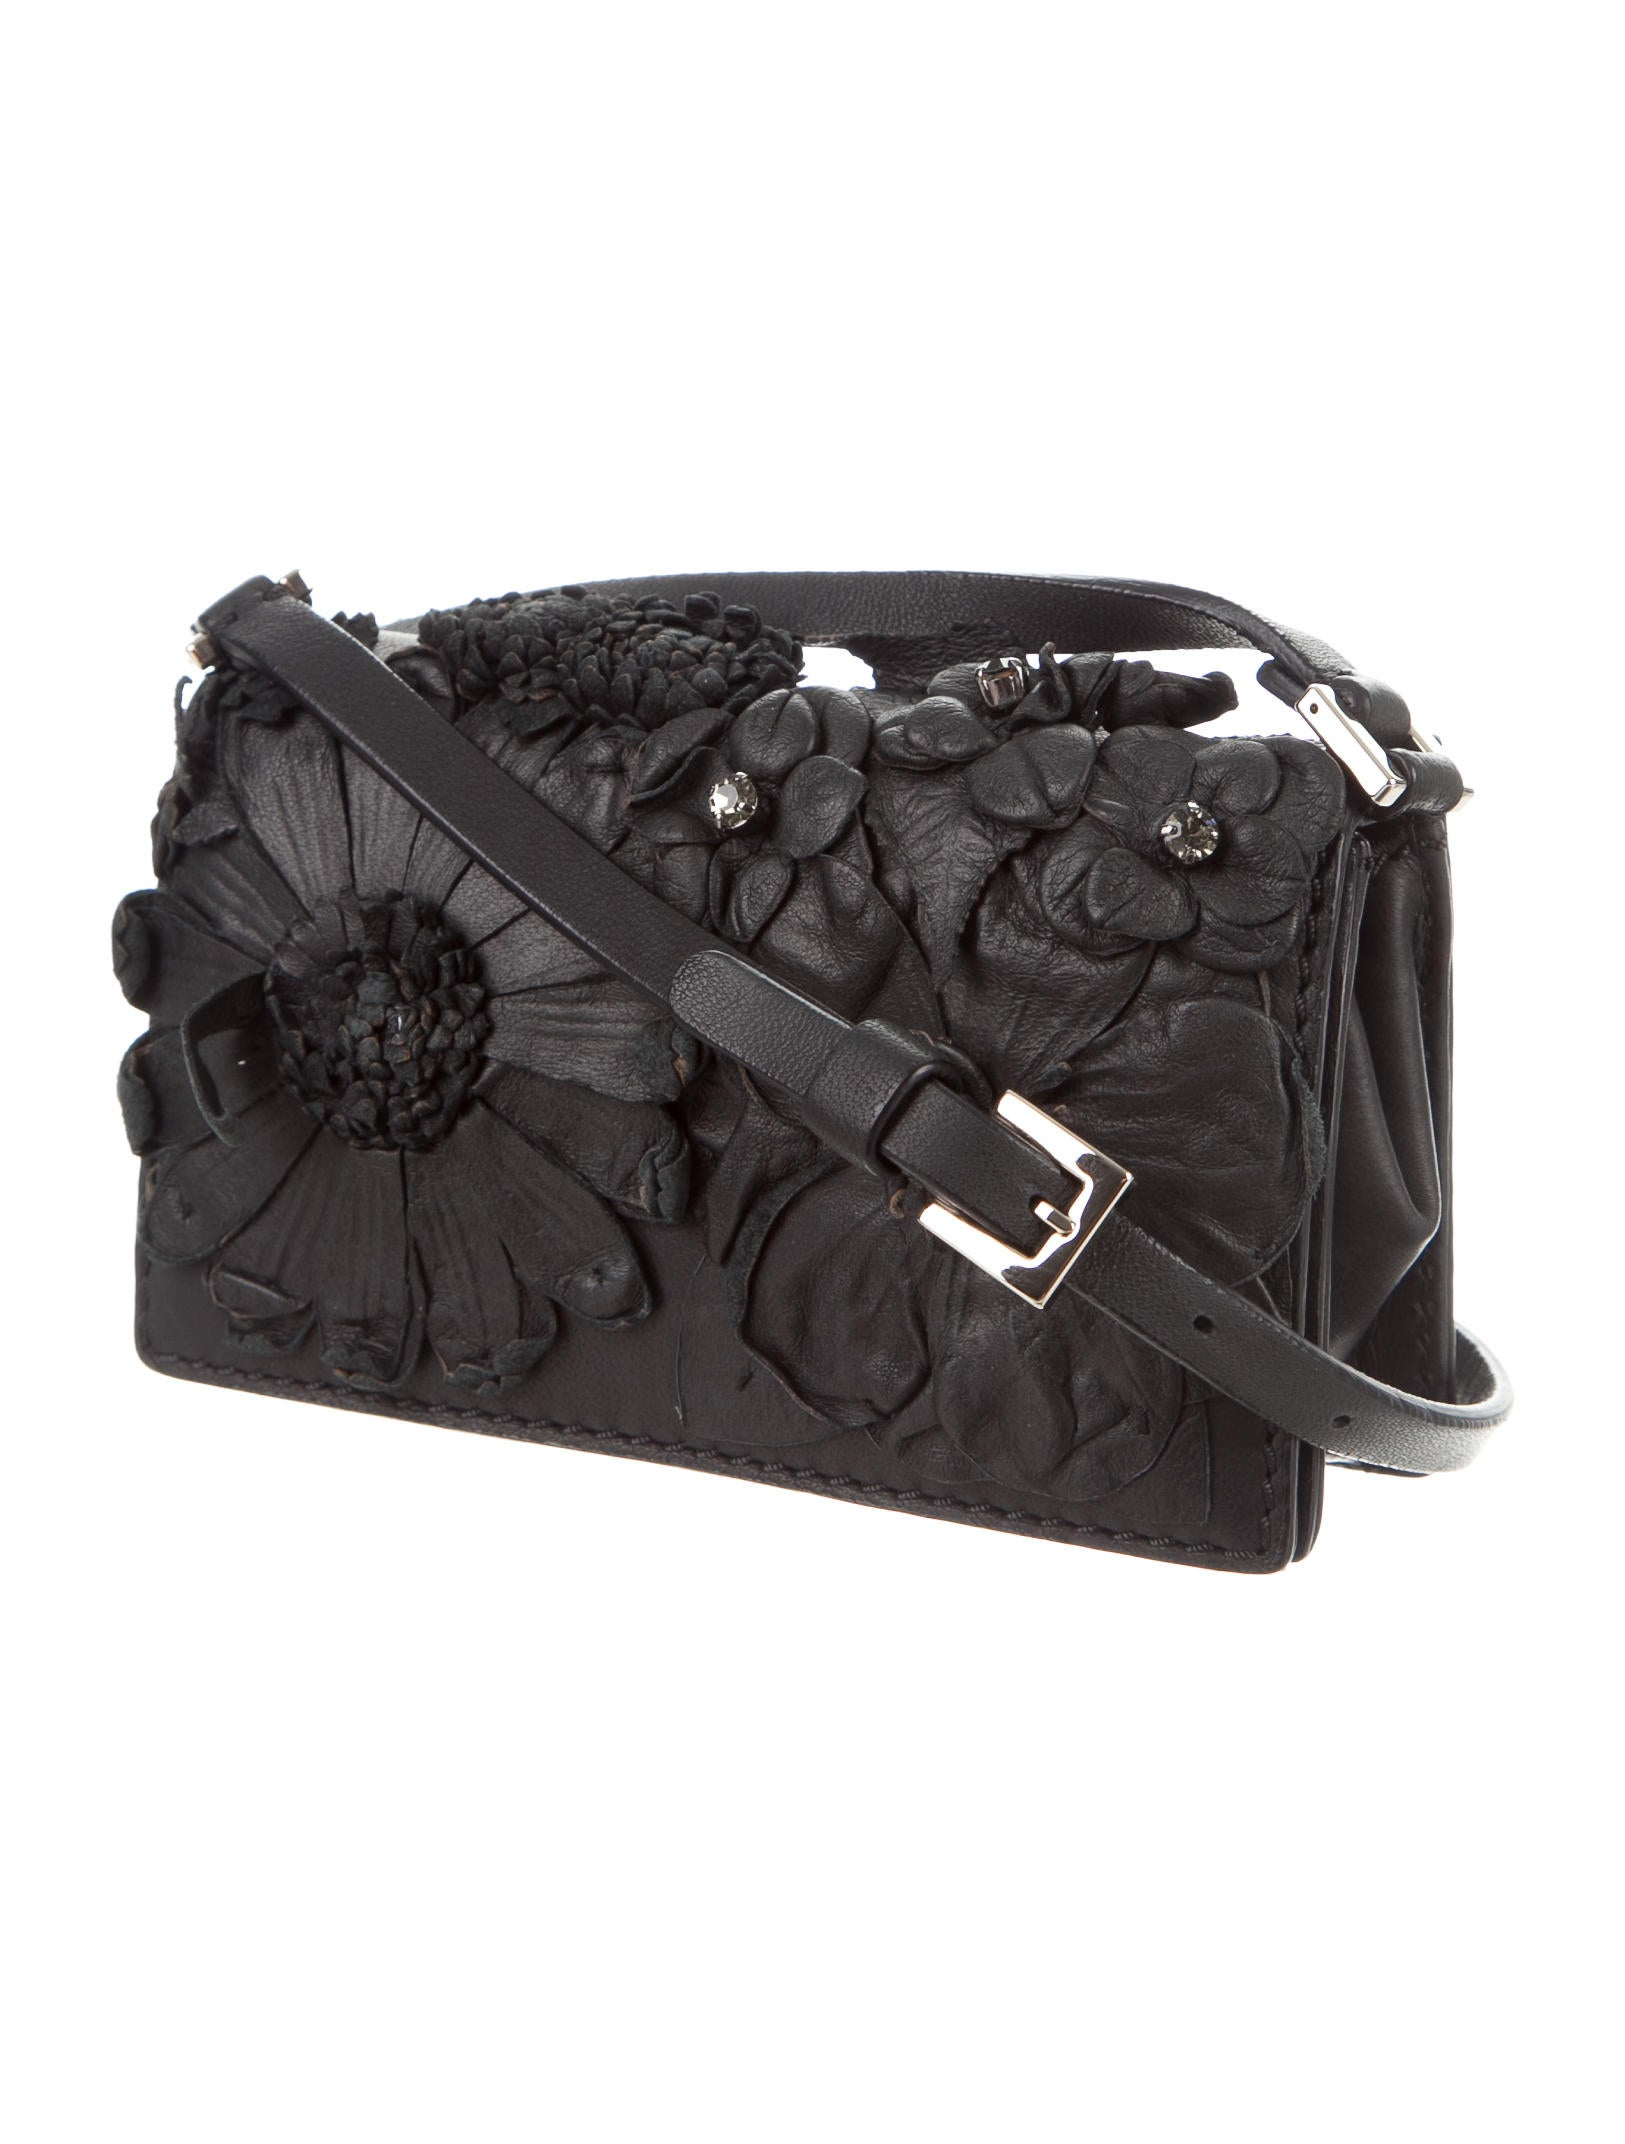 Valentino Floral-Embellished Leather Mini Crossbody Bag - Handbags - VAL56051 | The RealReal